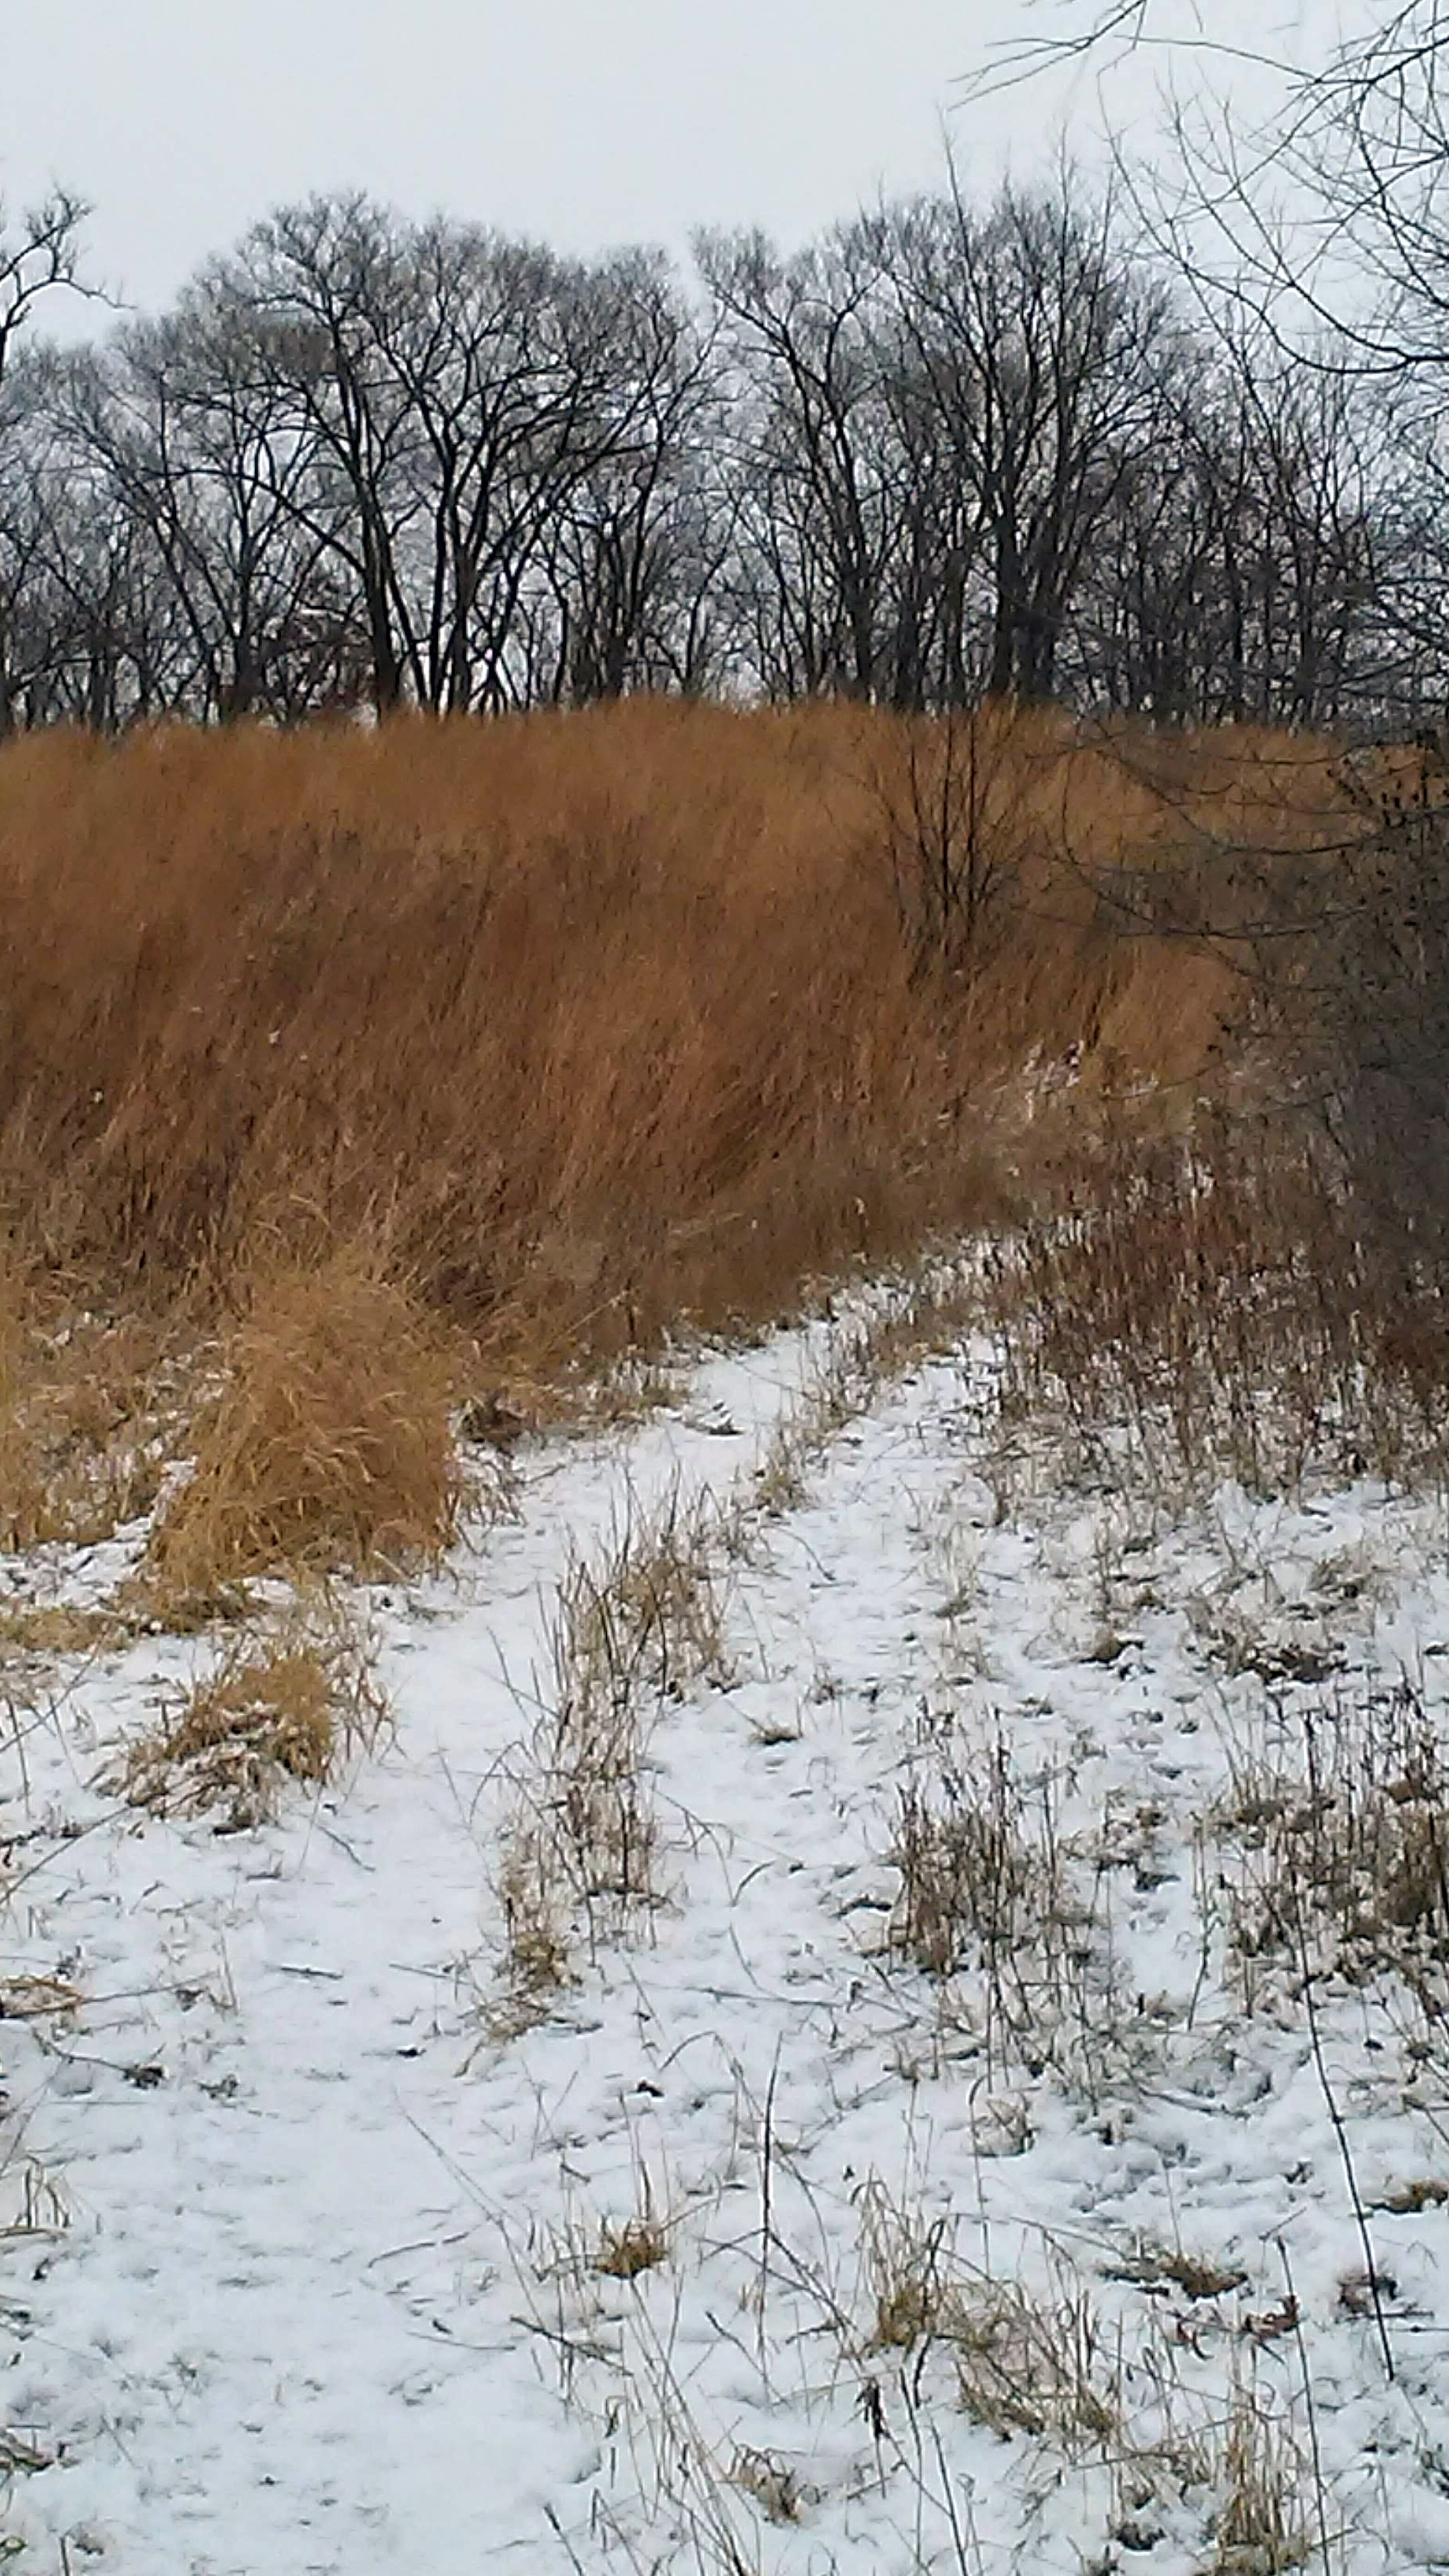 winter path through tall grass